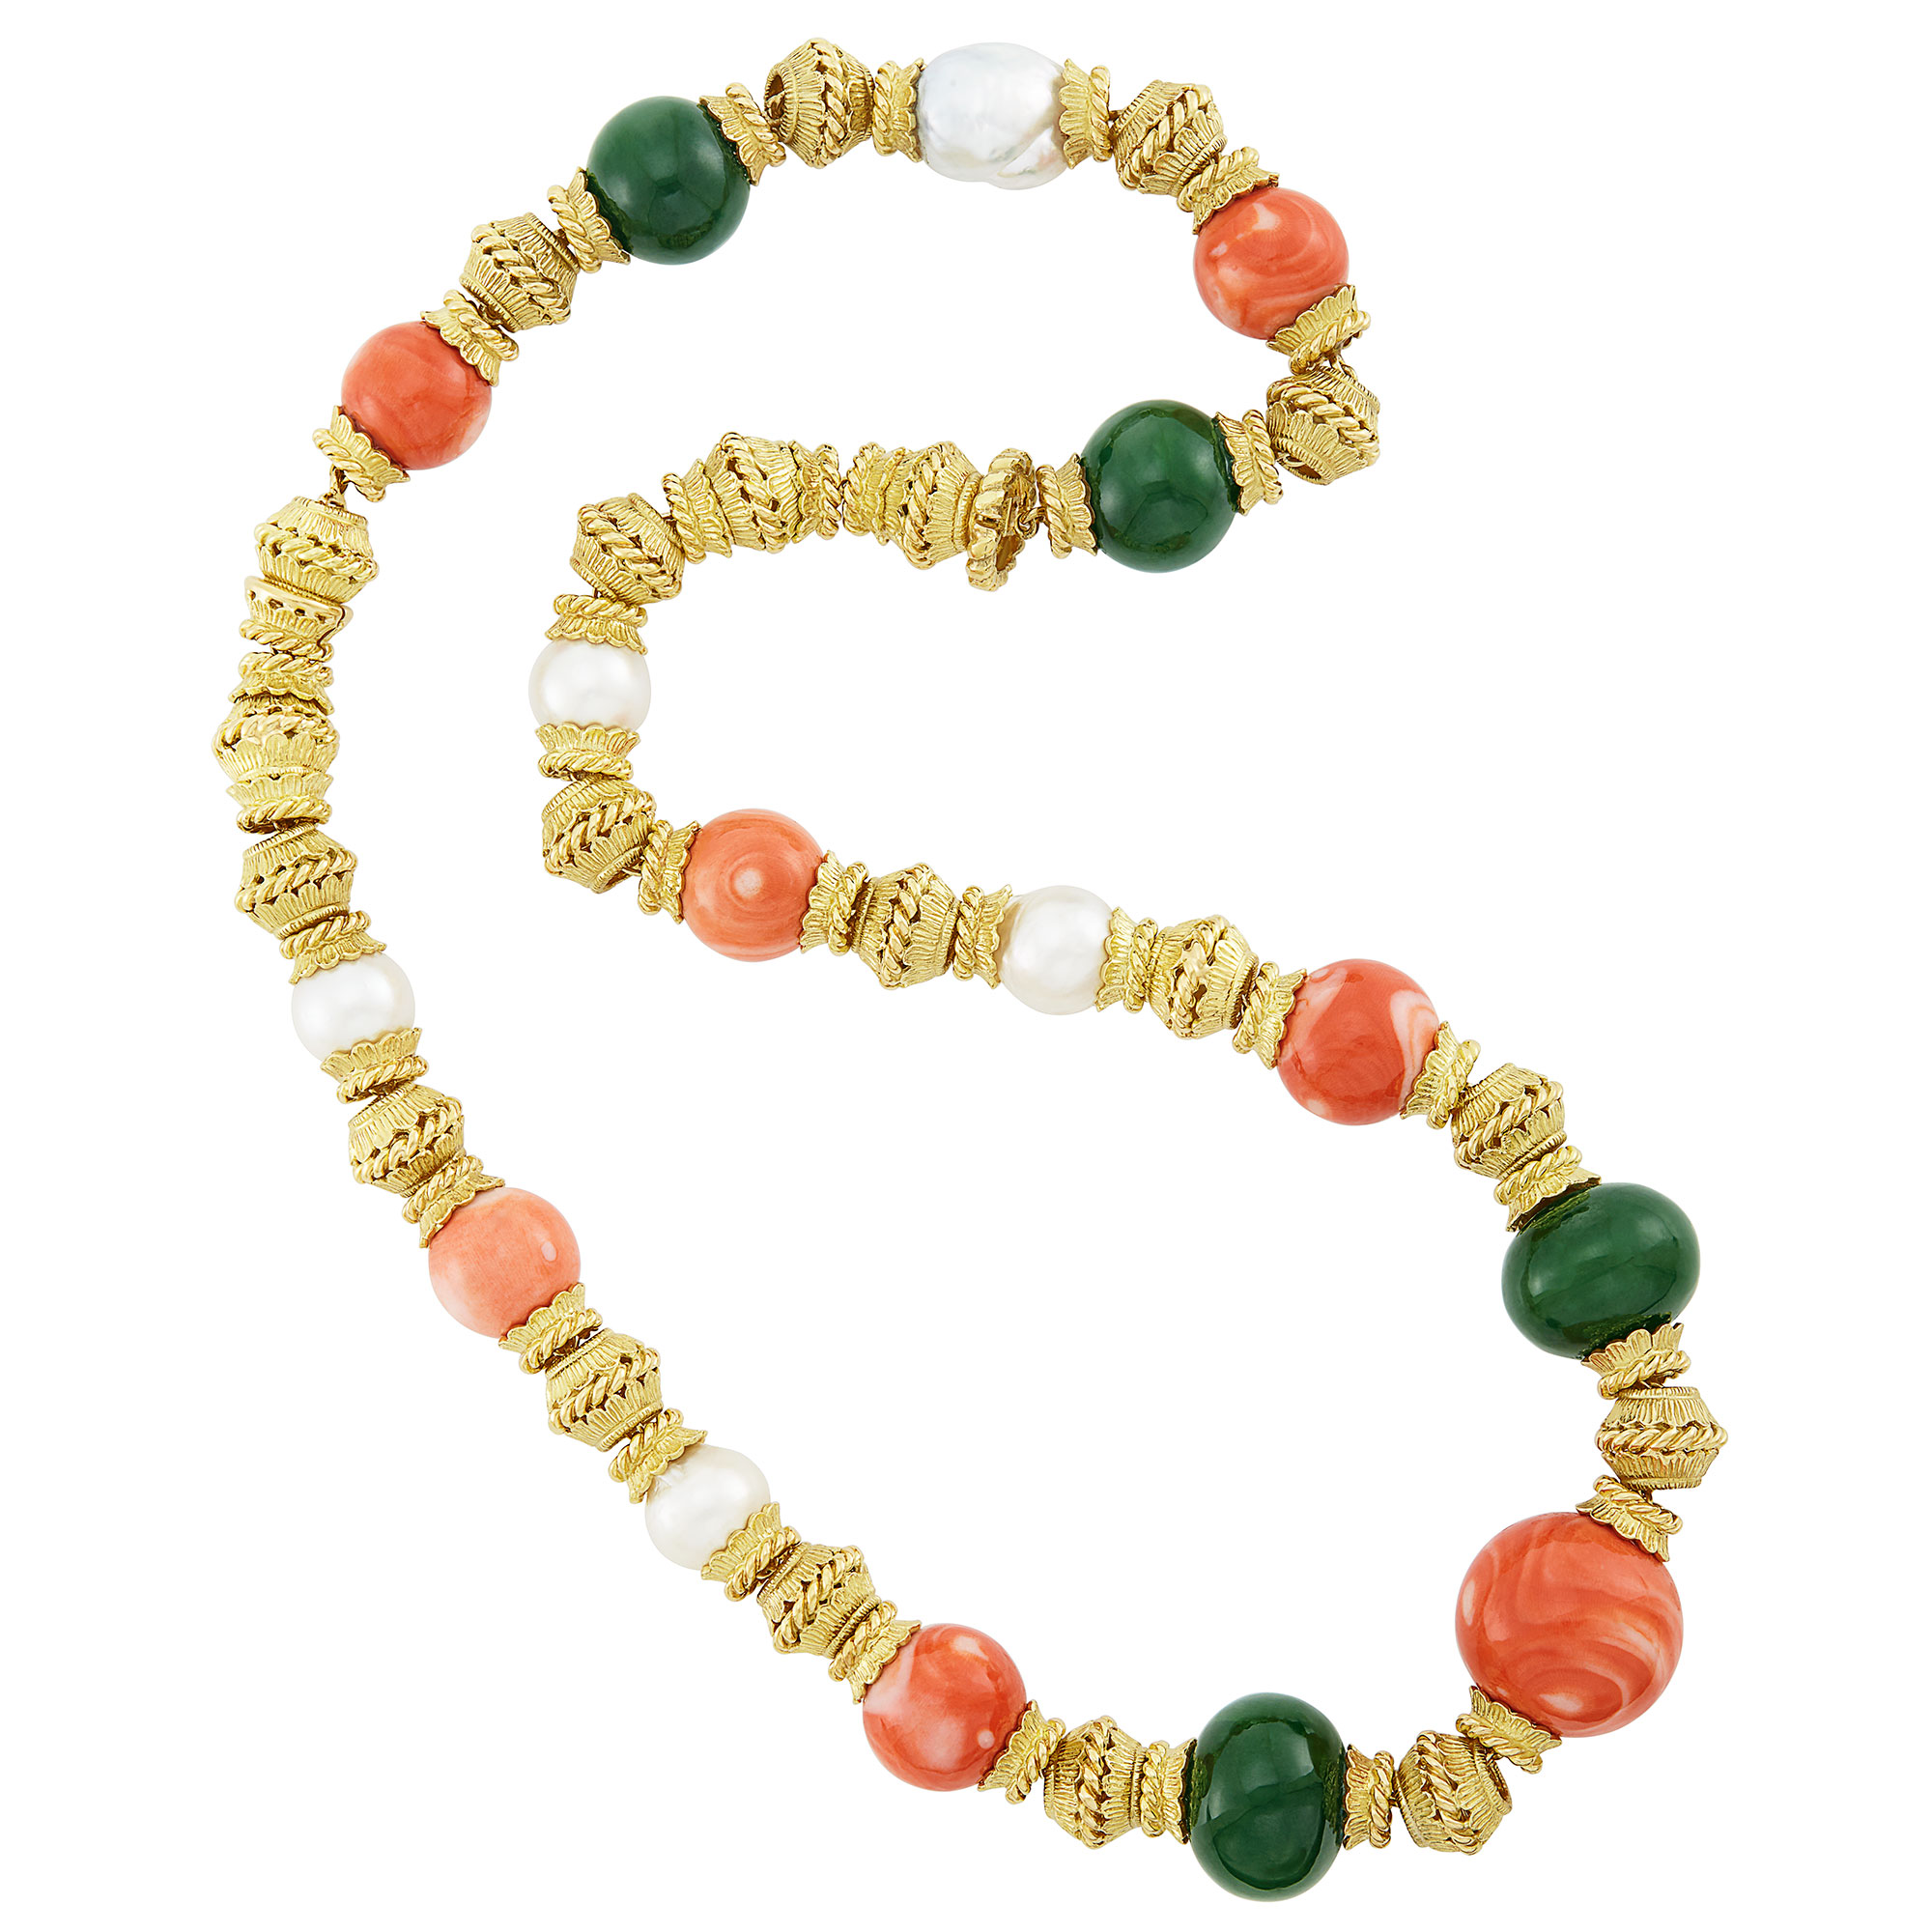 Lot image - Gold, Coral and Nephrite Bead and South Sea Cultured Pearl Necklace/Bracelet Combination, David Webb